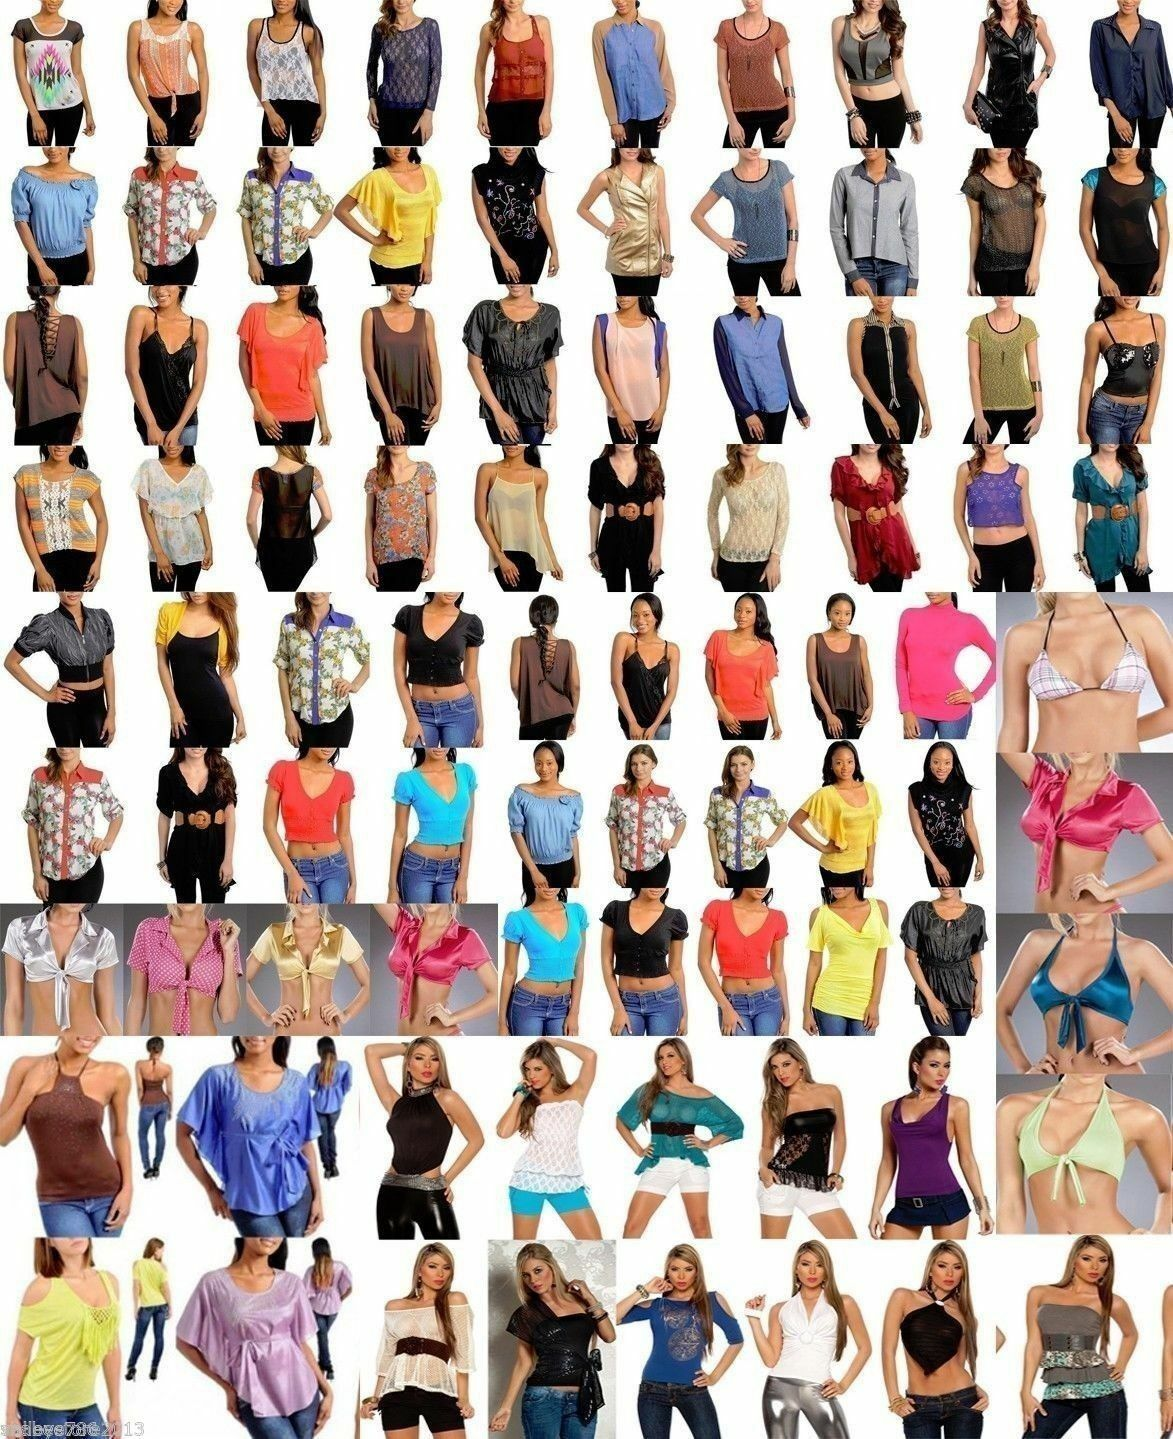 Lot 20 Pieces Wholesale Women's Blouses T Shirts Tops Shrug Bolero Fashion S M L